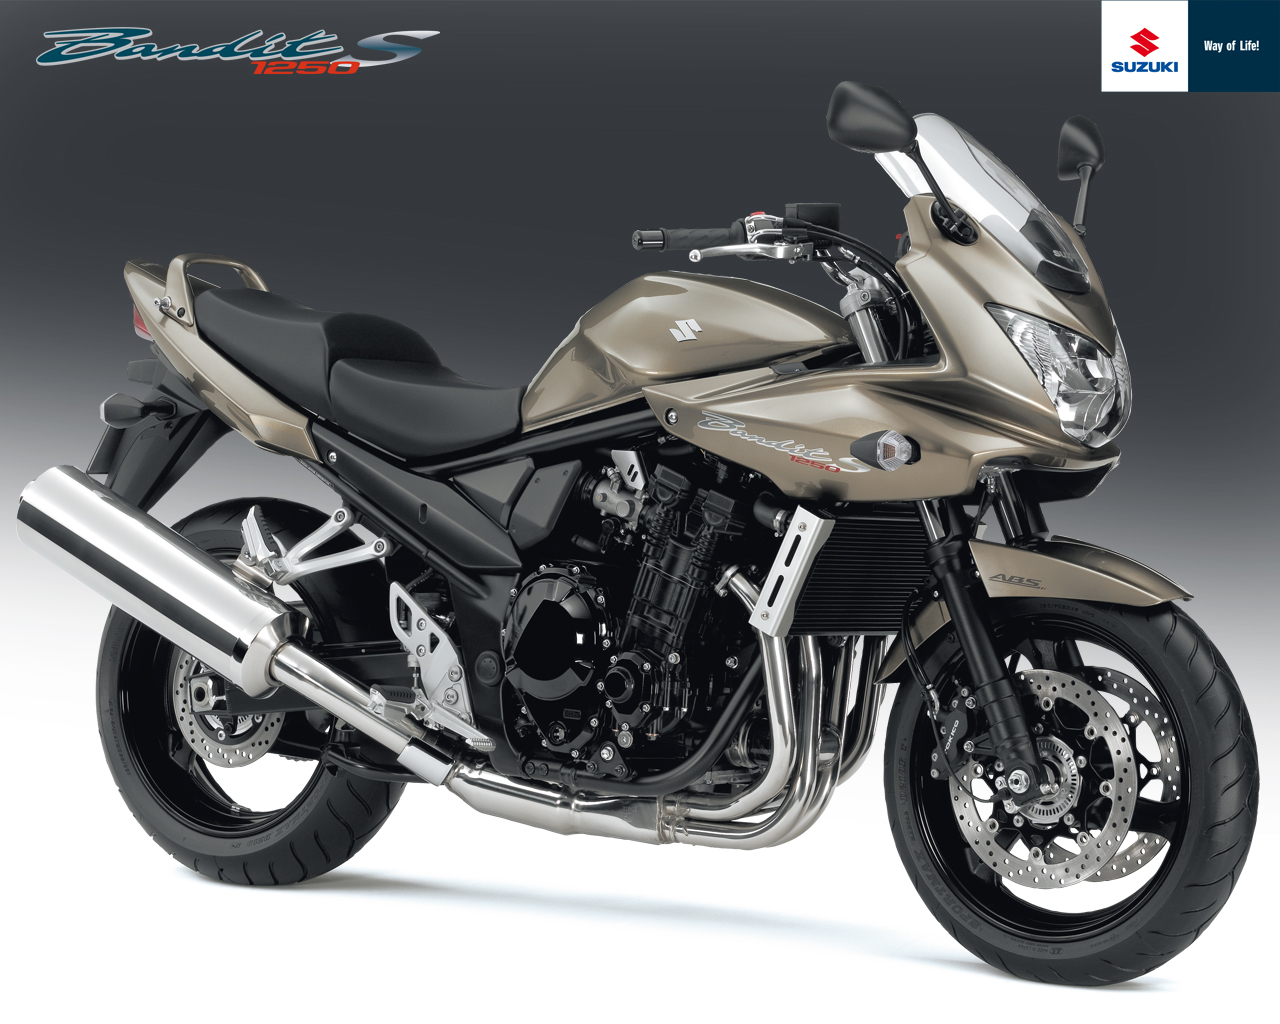 suzuki gsf 1200 sa bandit image 10. Black Bedroom Furniture Sets. Home Design Ideas